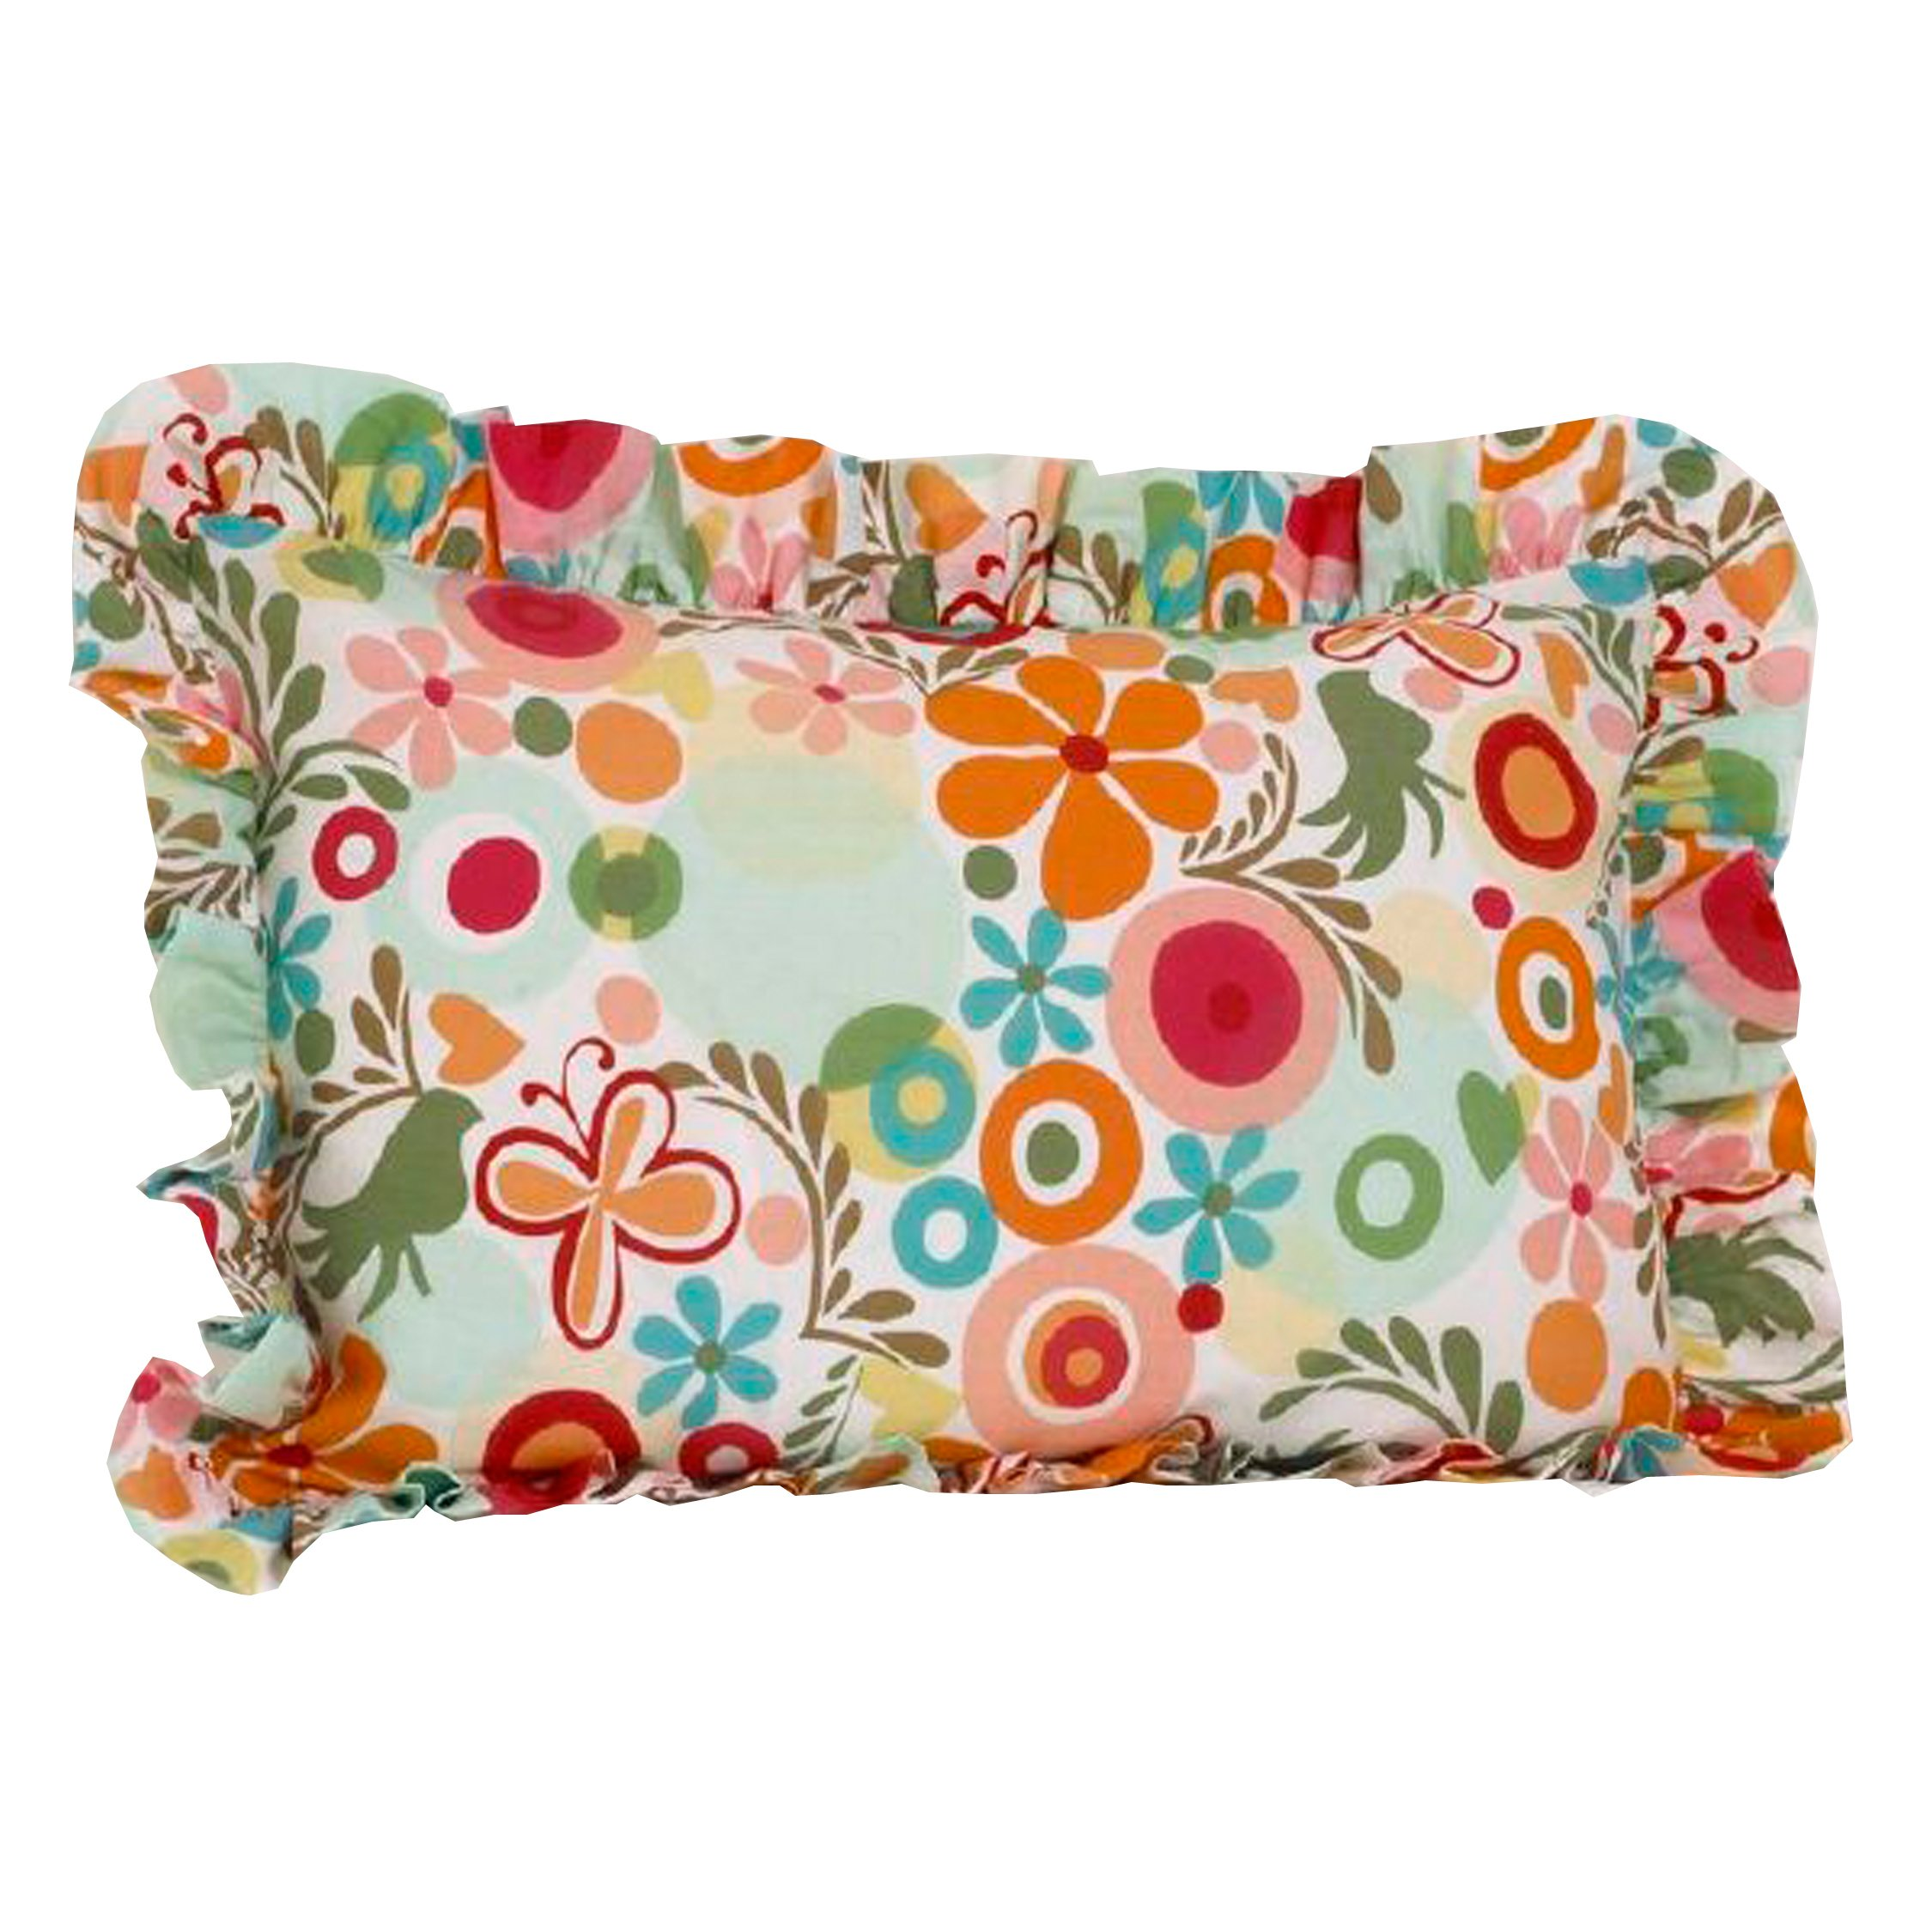 Cotton Tale Designs 100% Cotton Bright Bold Fun Floral Print Red, Pink, Turquoise, Blue, Orange, Green Multi Colored Lizzie Standard Ruffled Pillow Sham - Girl Flower Power- Pillow Cover by Cotton Tale Designs